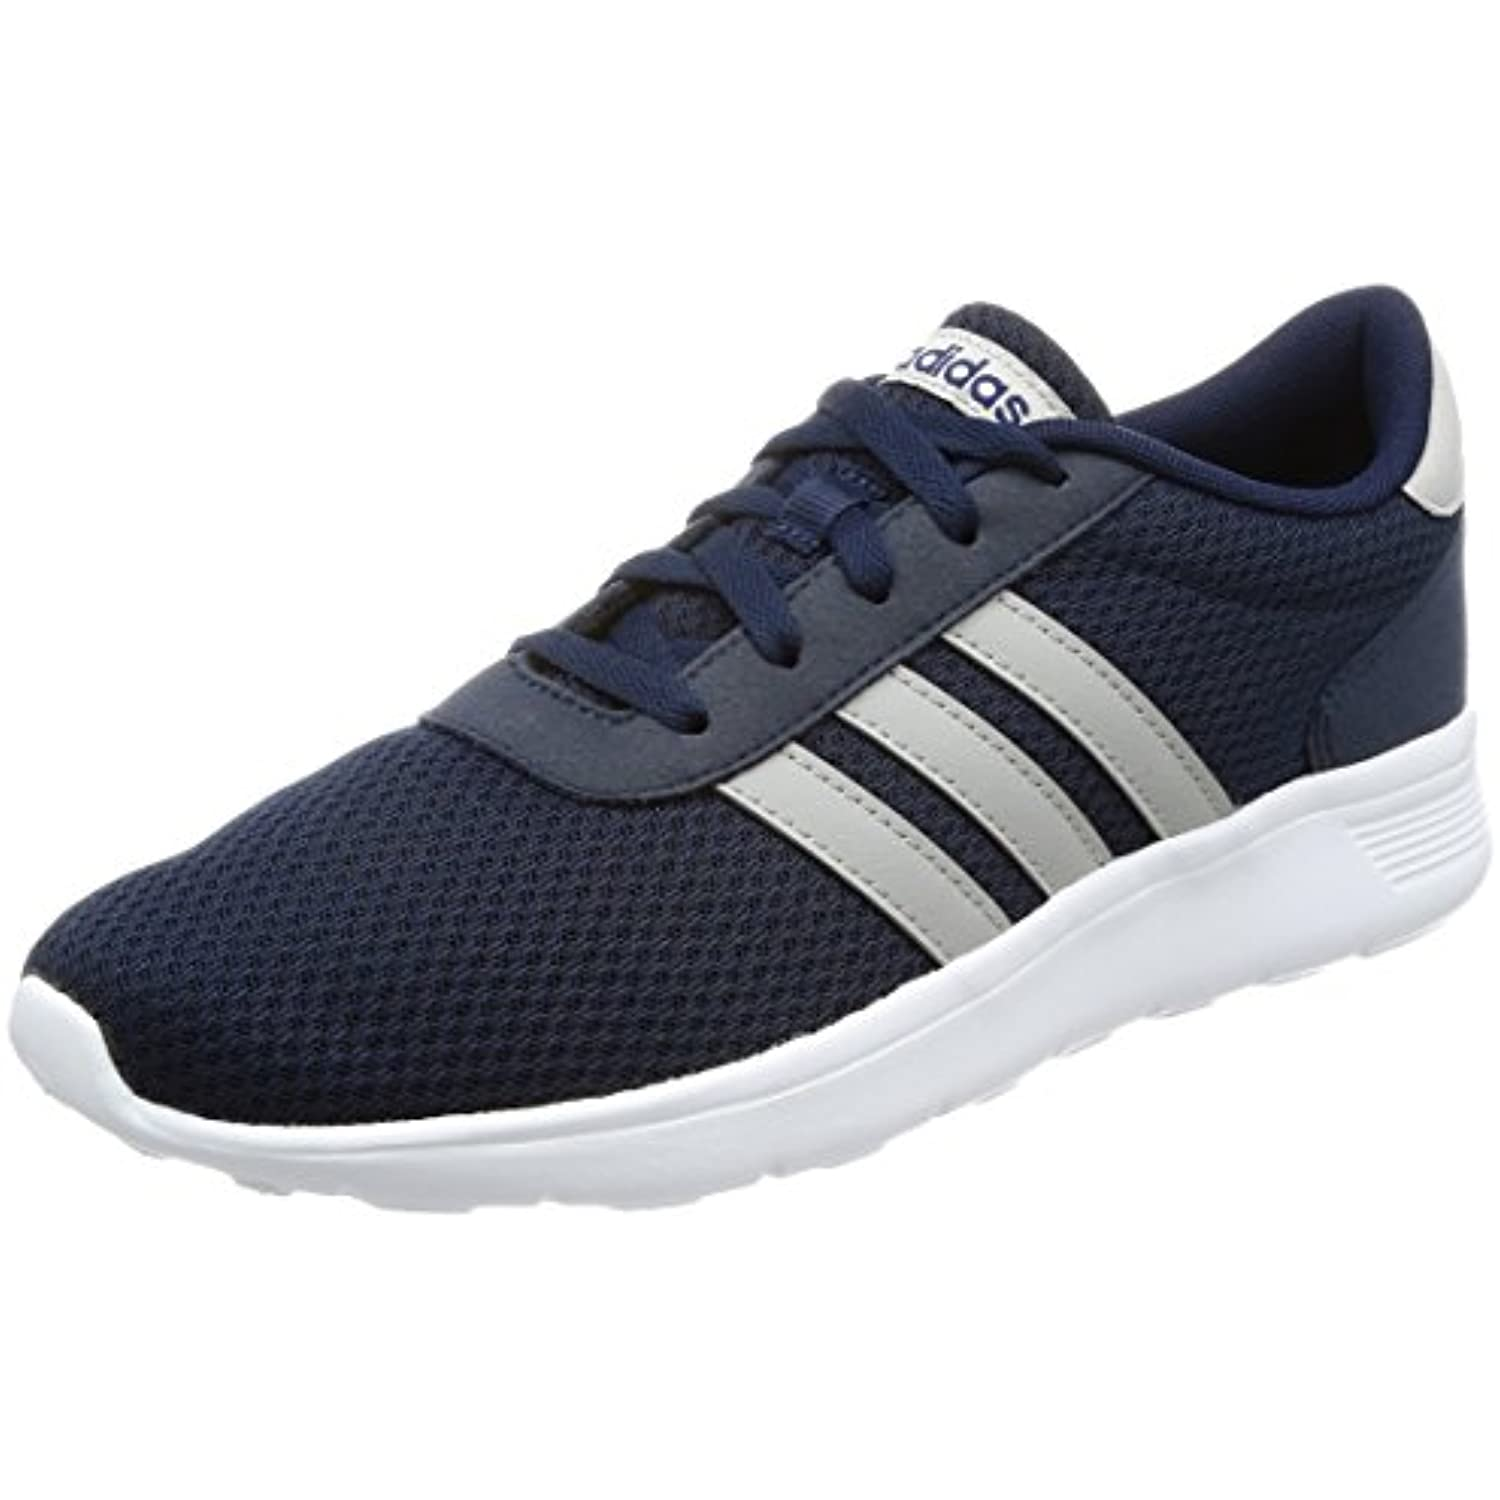 Adidas Fitness Lite Racer, Chaussures de Fitness Adidas Homme - B073NYS2RR - 9a38d2